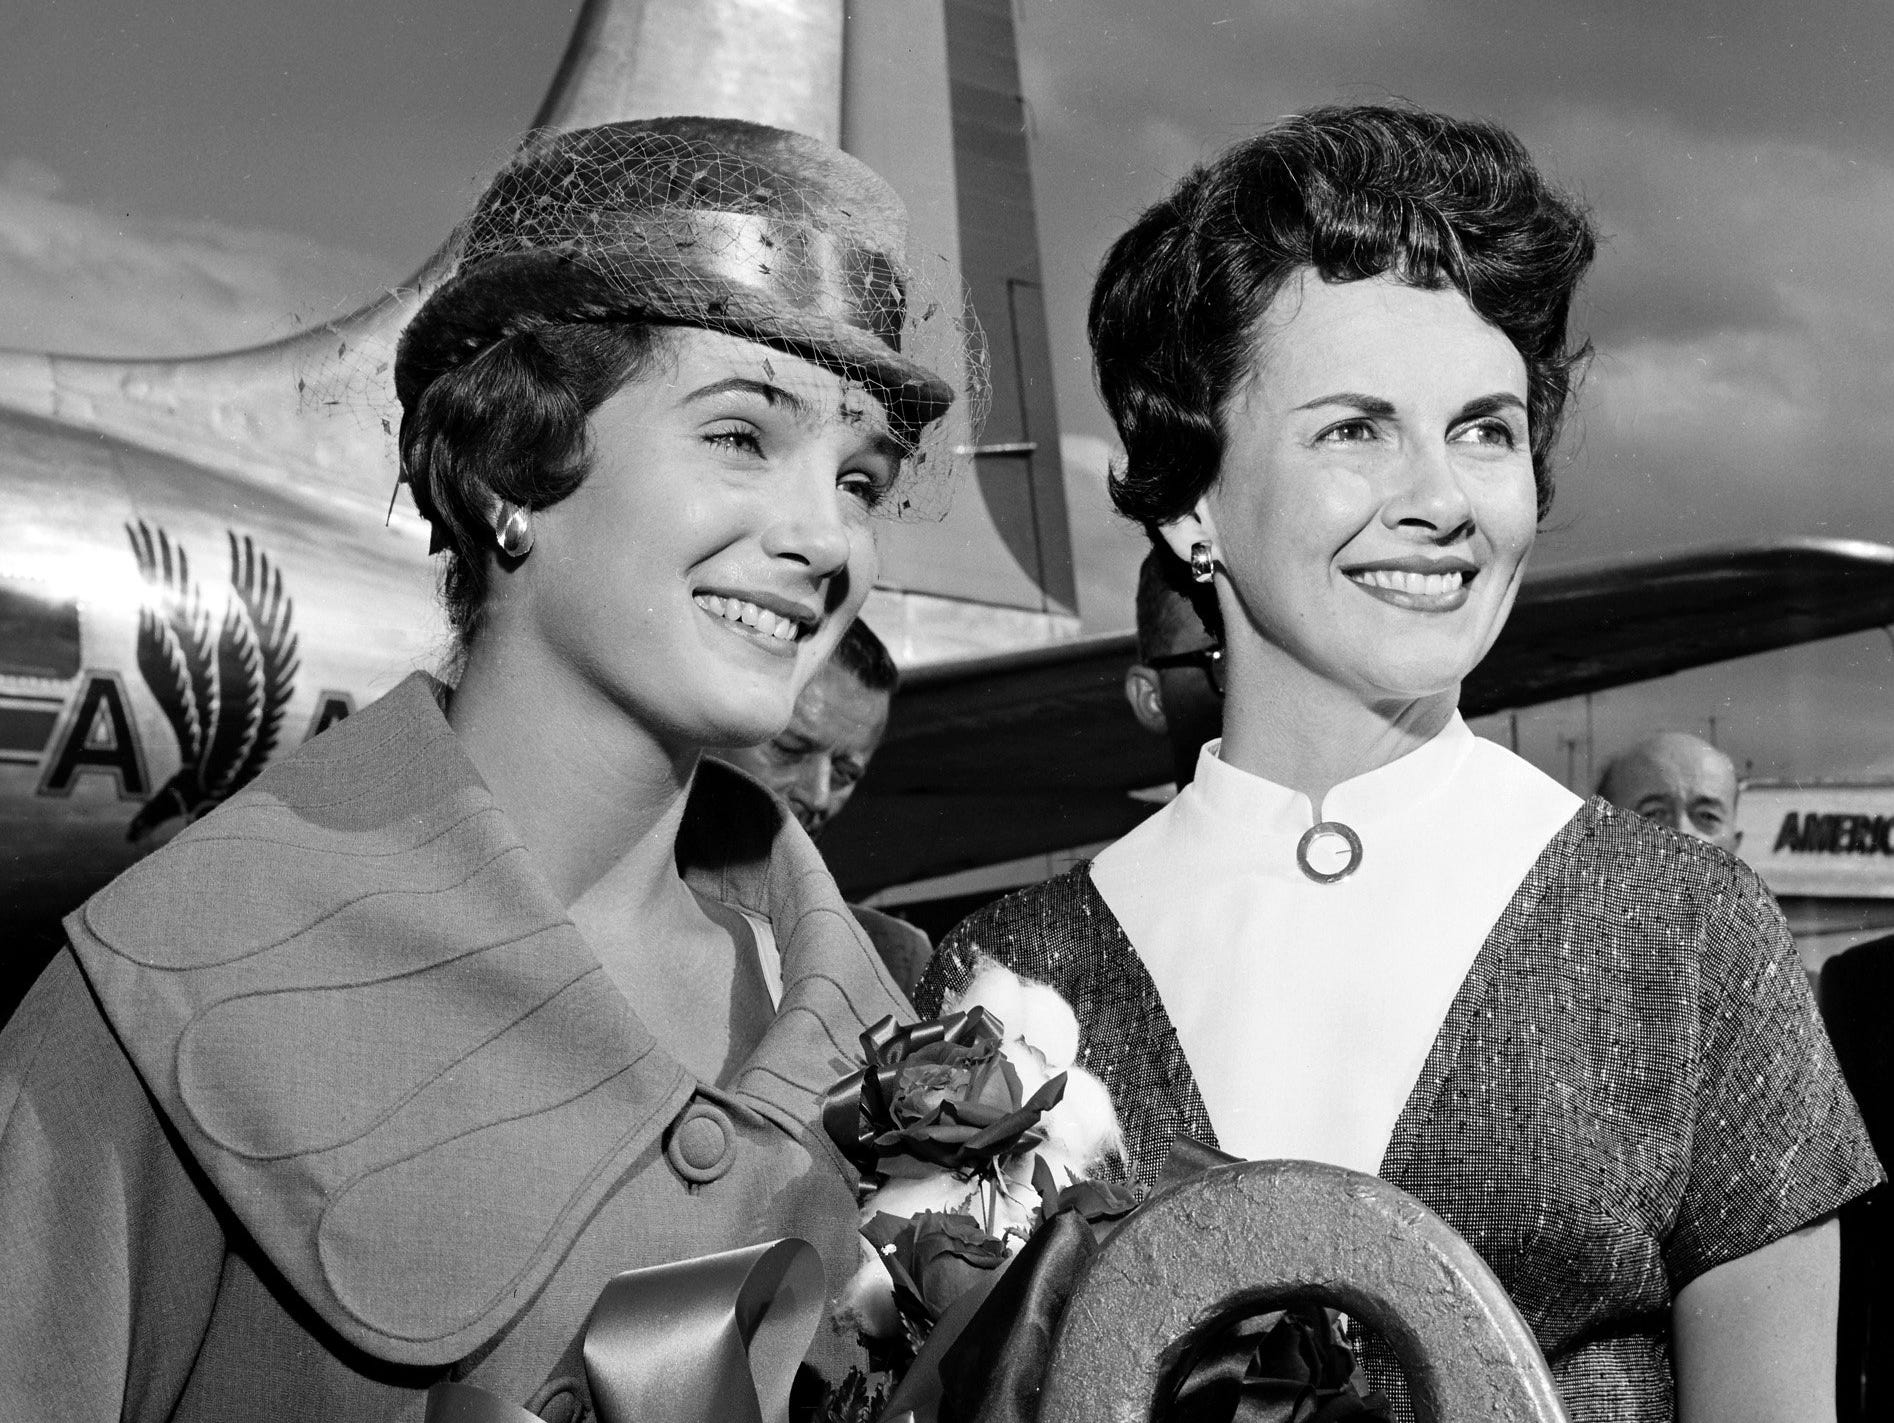 Lynda Lee Mead (Left) of Natchez, MS, Miss America of 1960, was welcomed to Memphis and the Mid-South on 7 Oct 1959 by Miss America 1947, Mrs. Barbara Walker Hummel of Memphis.  Lynda Lee, who landed at Municipal Airport, was en route to Blytheville, AR, where she will open the national Cotton Picking Contest.